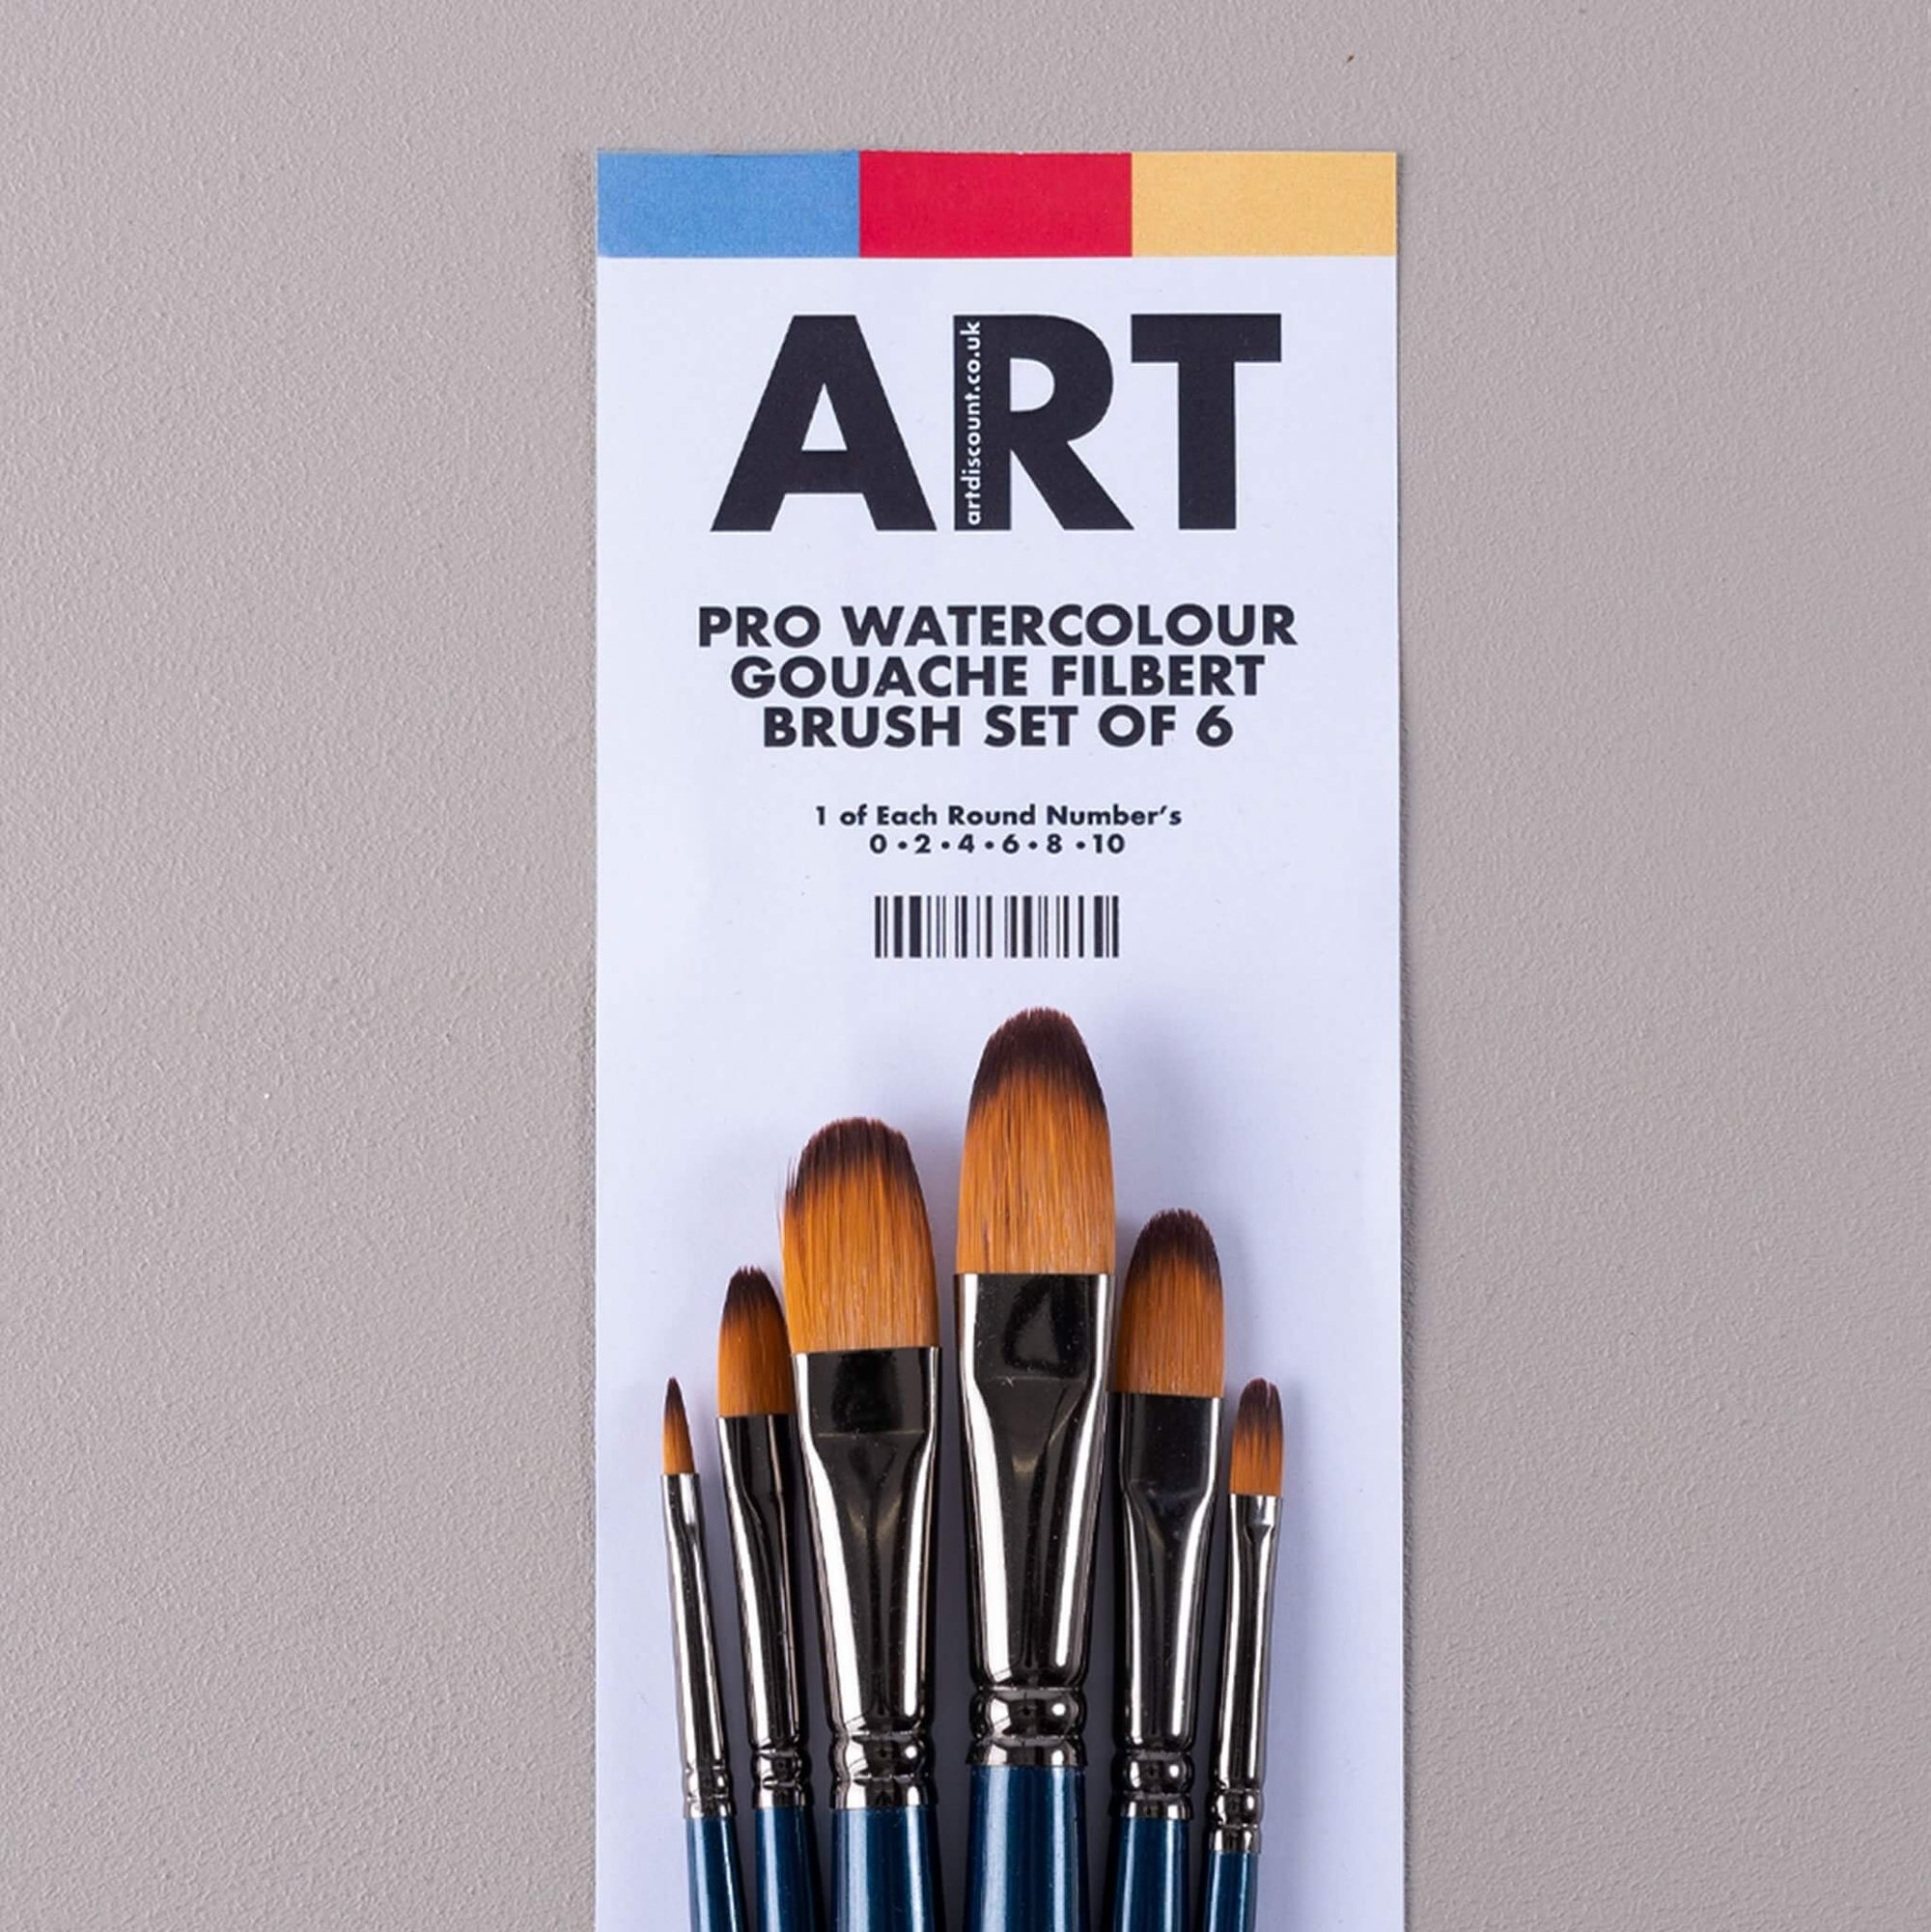 ARTdiscount Pro Watercolour/Gouache Filbert Brush Set of 6